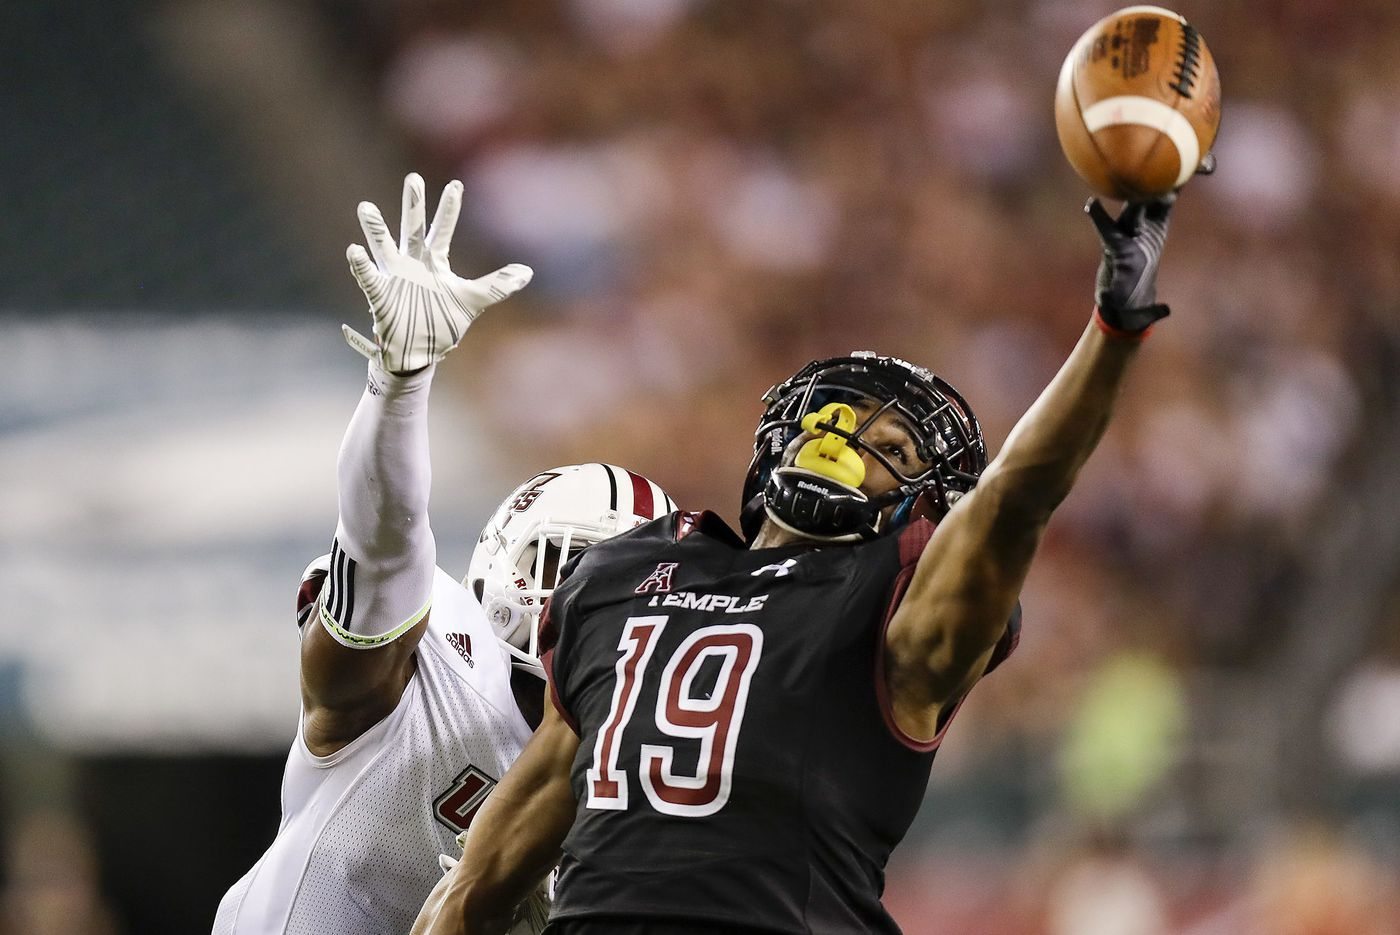 Temple receiver Ventell Bryant ready to make the most of second chance